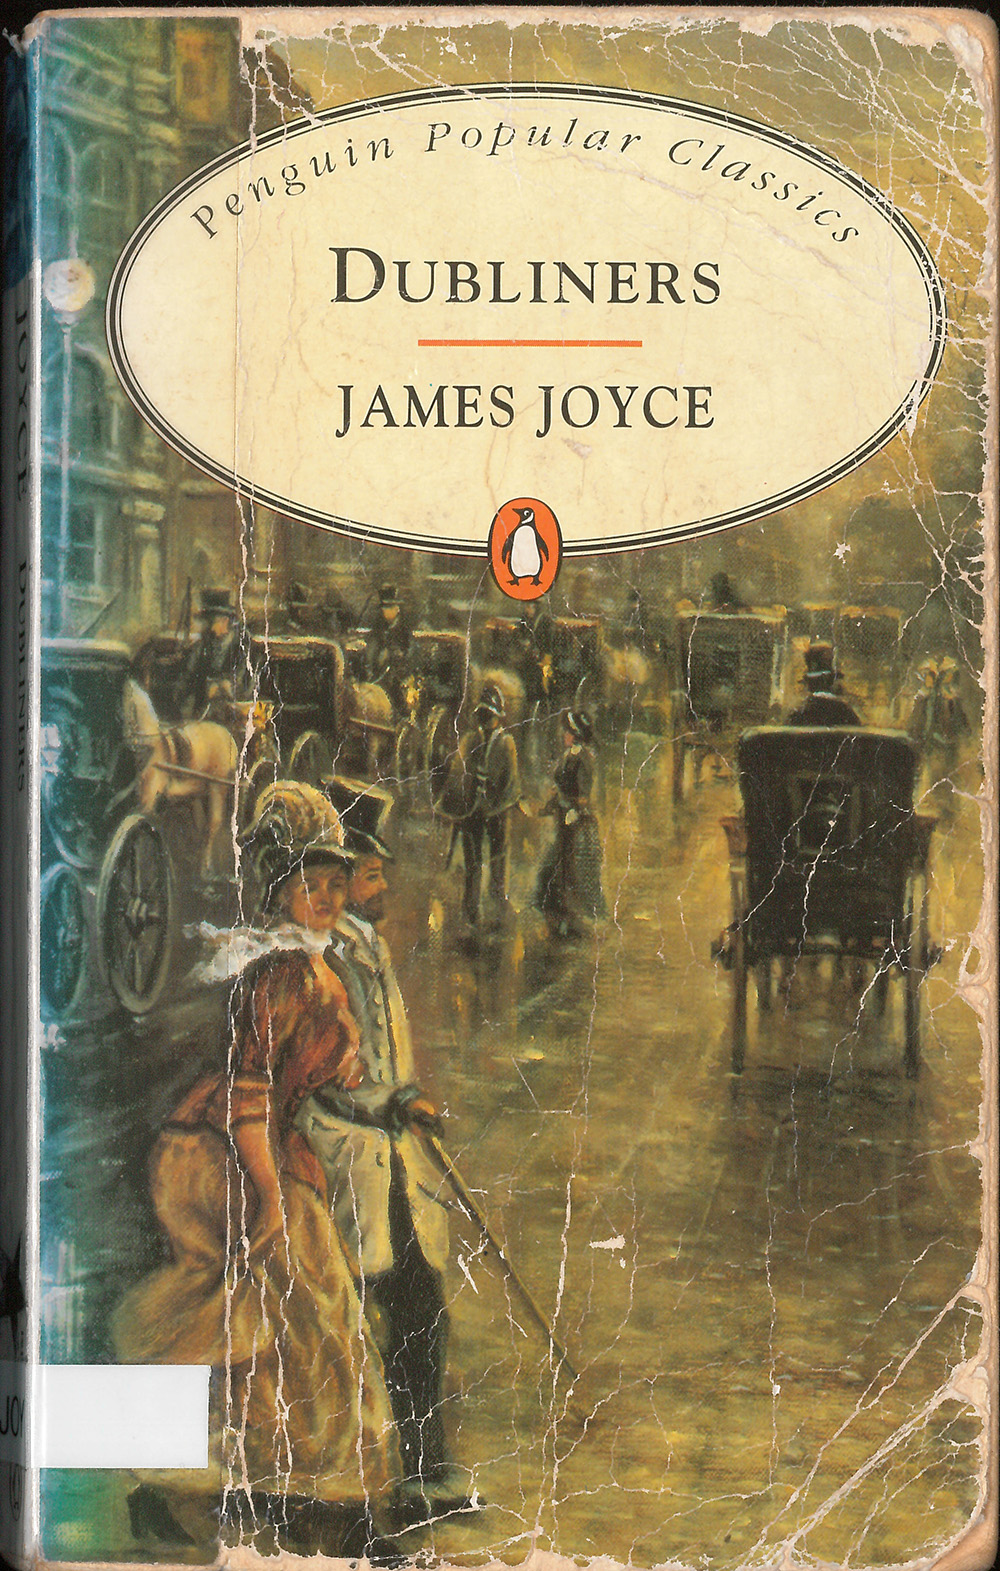 book cover for Joyce's Dubliners, featuring artwork of a Victorian streetscape